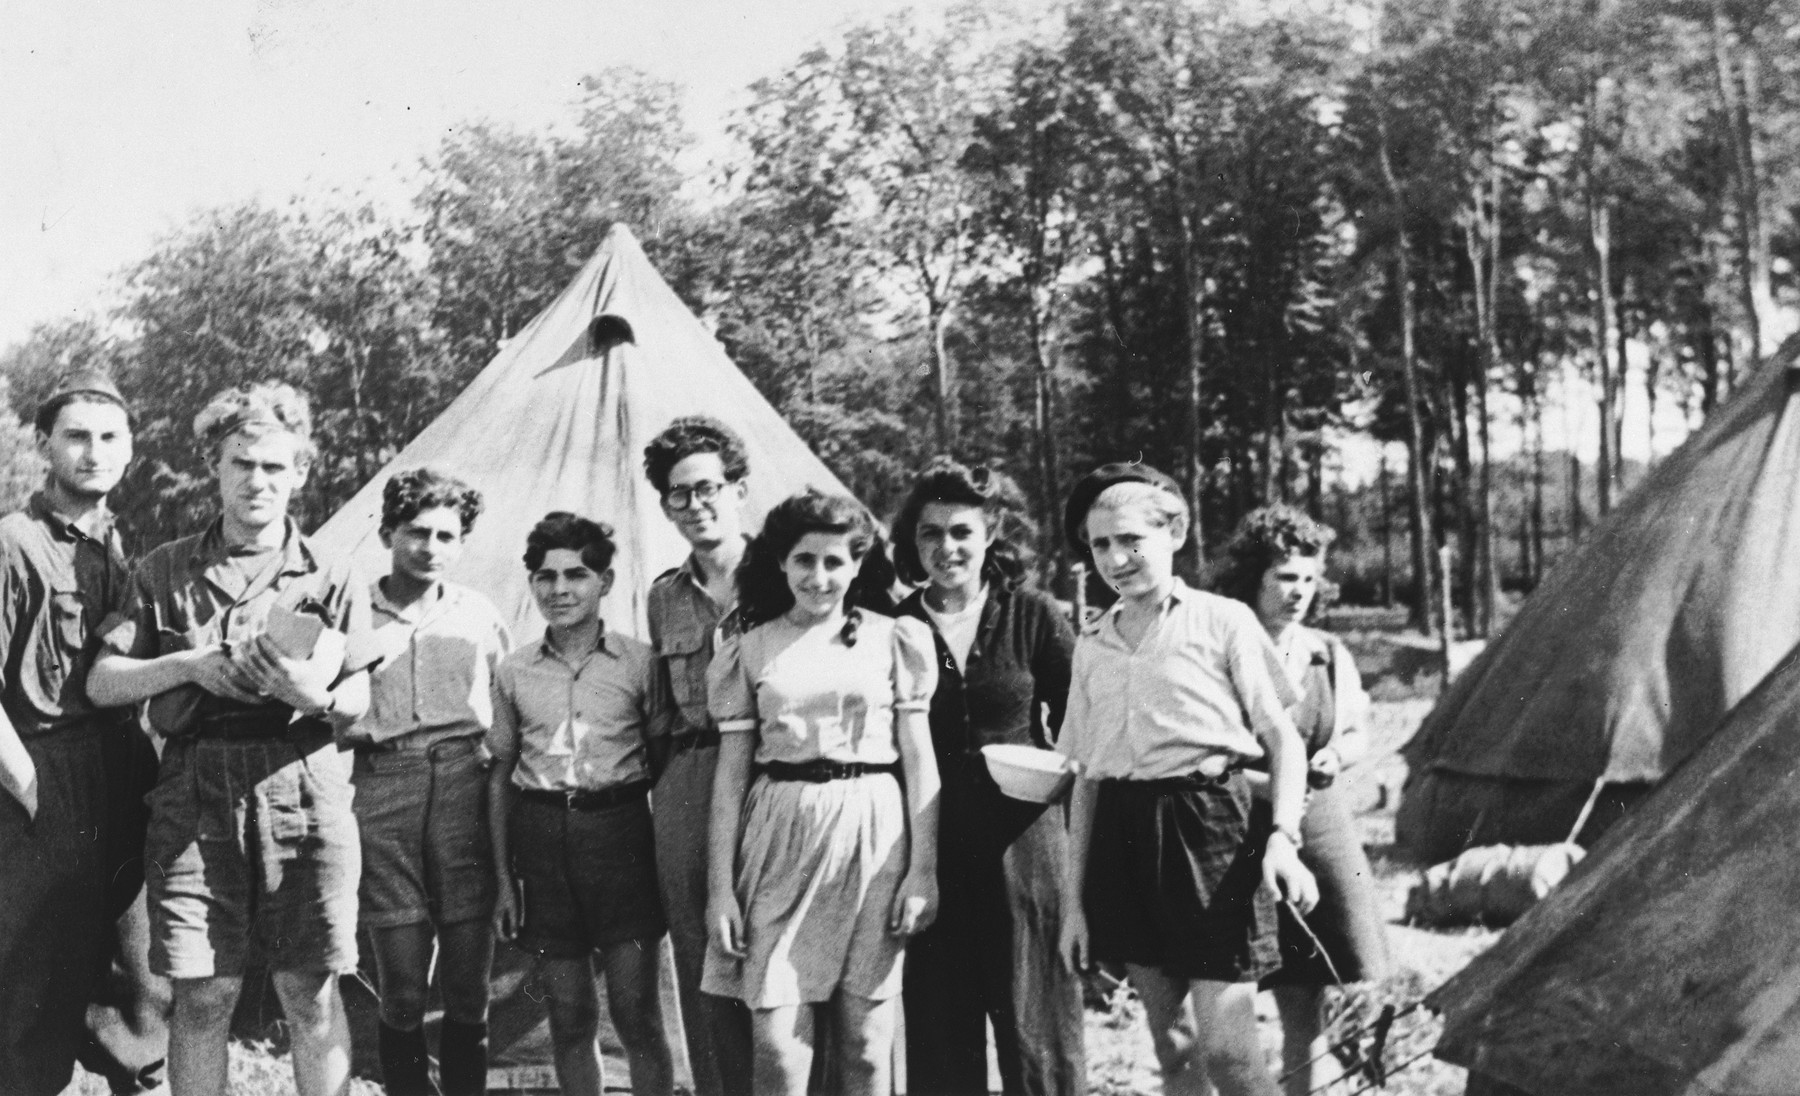 Group portrait of Jewish DP youth standing among a cluster of tents at the Poppendorf displaced persons camp.  Those pictured include Benno Ginsburg (second from the left) and Jacques Rabinovich (center, wearing glasses).